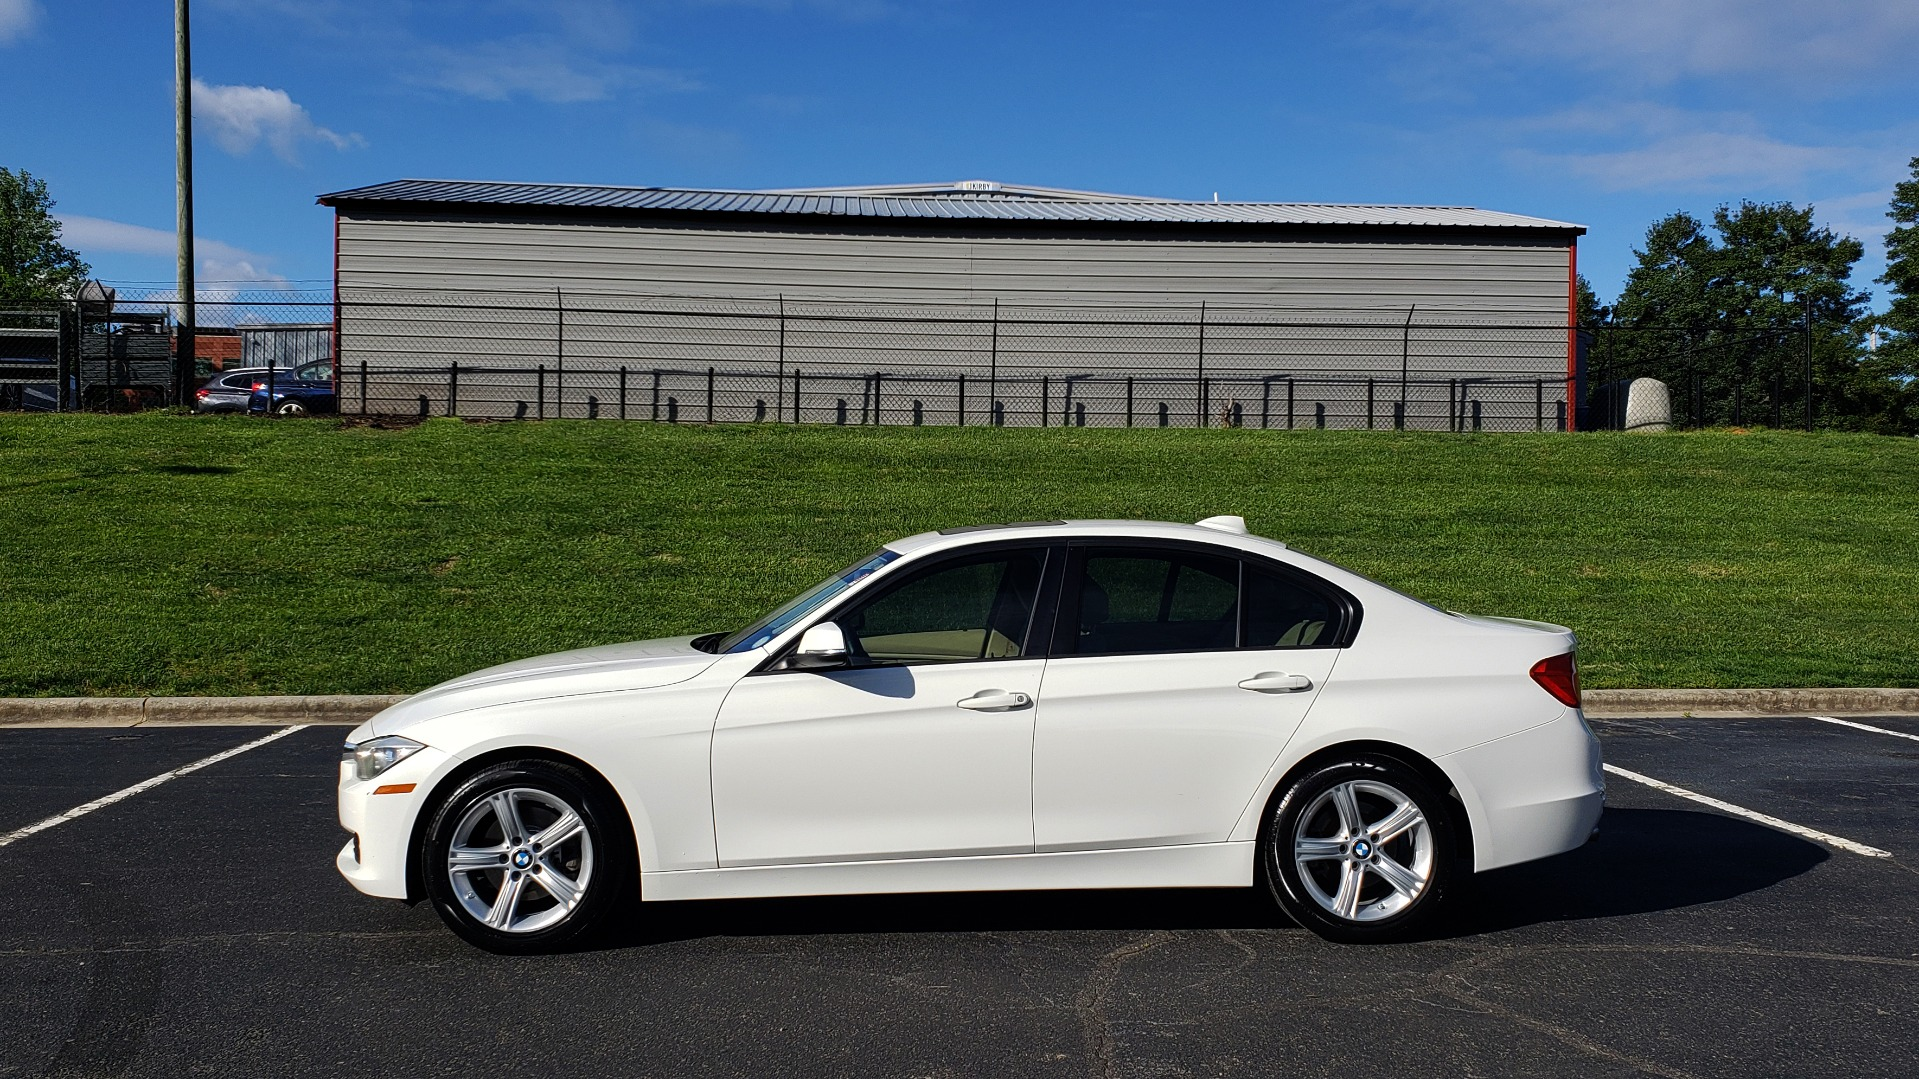 Used 2013 BMW 3 SERIES 328I PREMIUM / SUNROOF / COMFORT ACCESS KEY / SAT RADIO for sale Sold at Formula Imports in Charlotte NC 28227 2